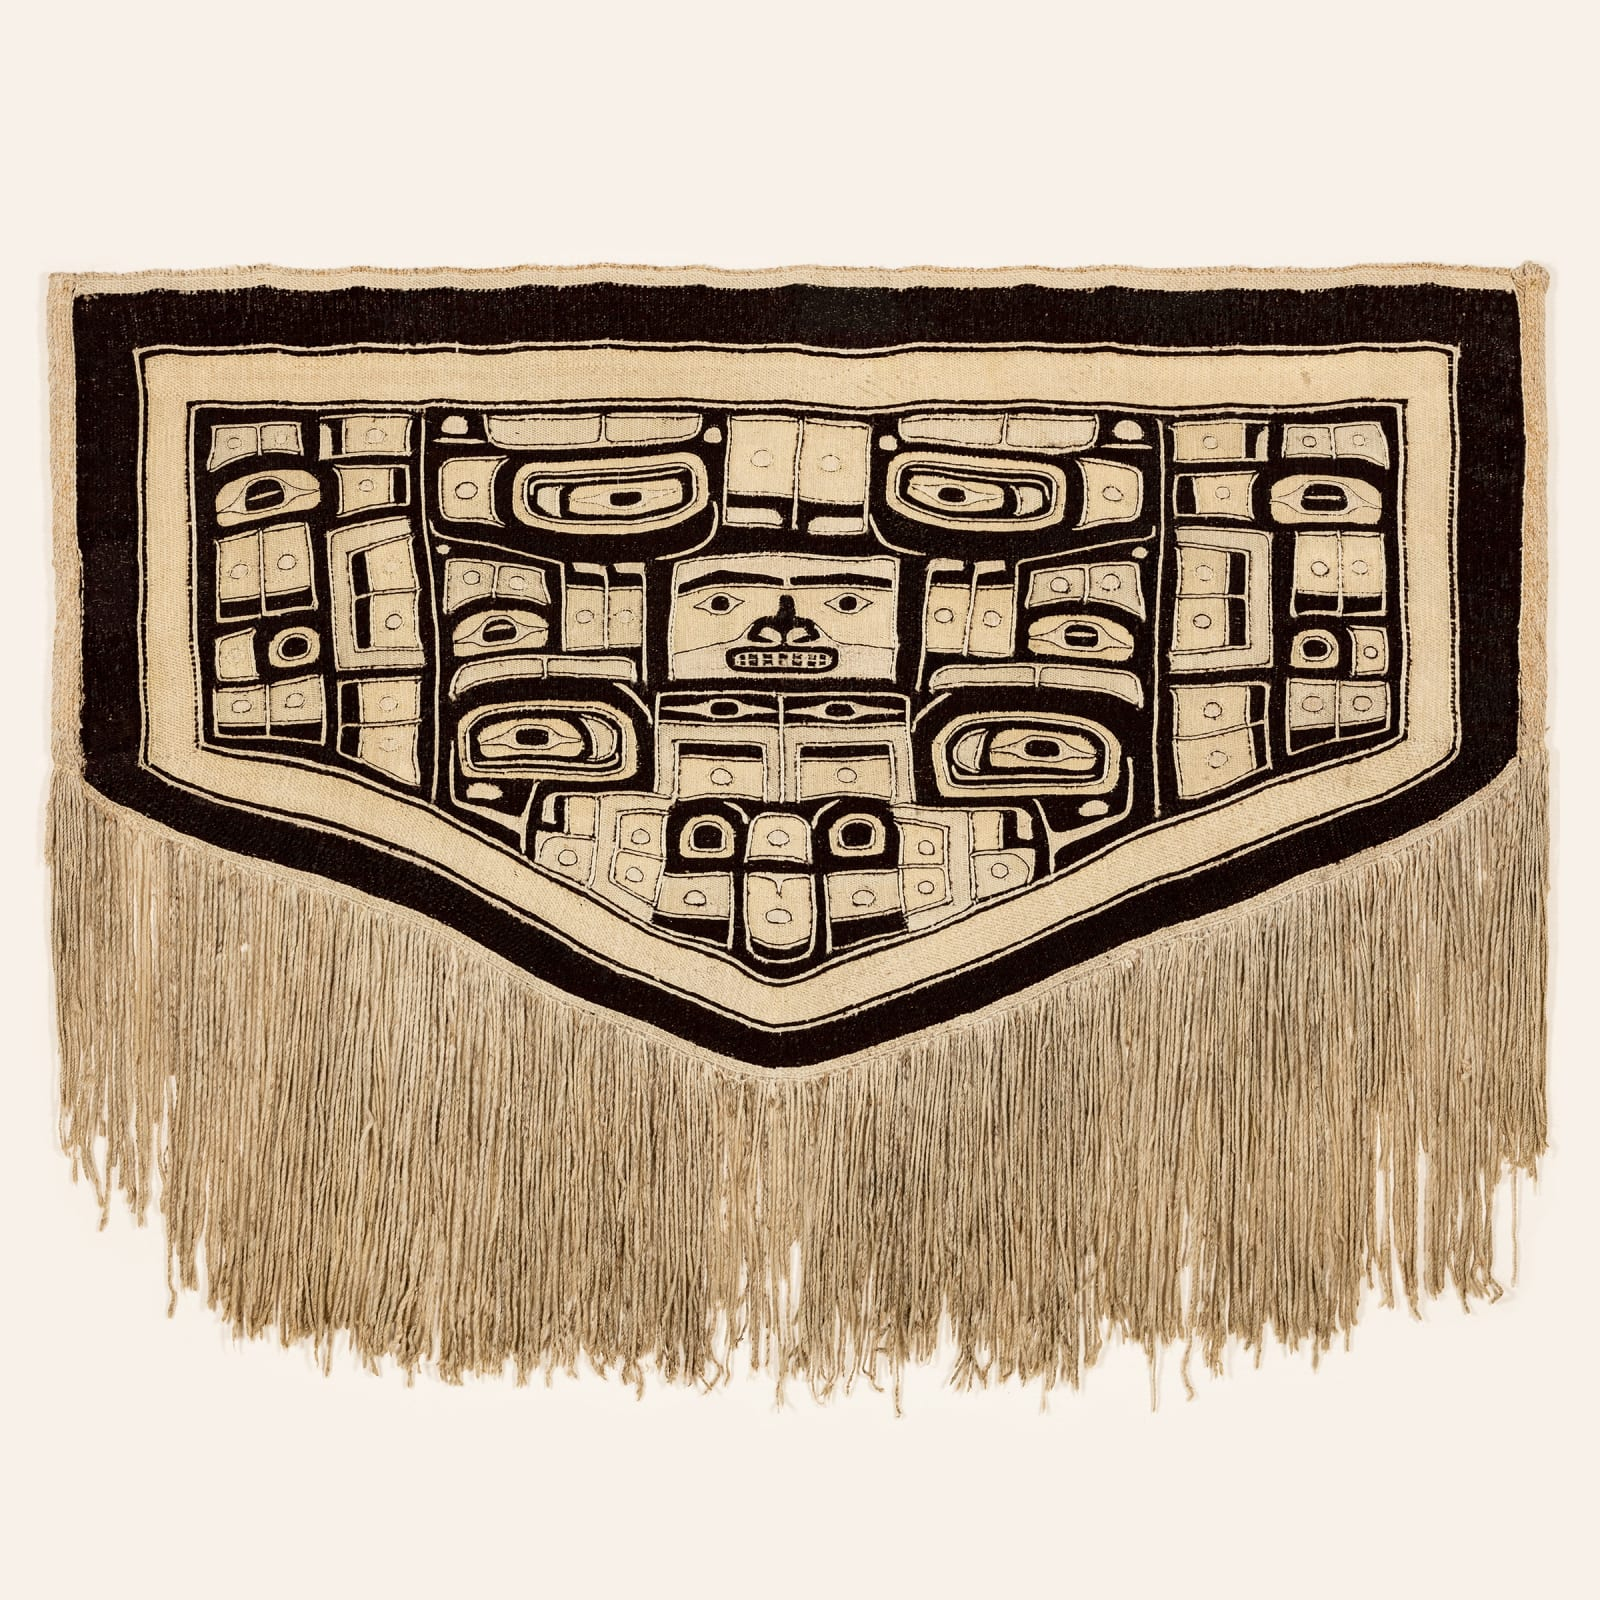 UNIDENTIFIED ARTIST, TLINGIT, CHILKAT KWAAN Chilkat Robe (Naaxein), c. 1880 REALIZED: $26,400